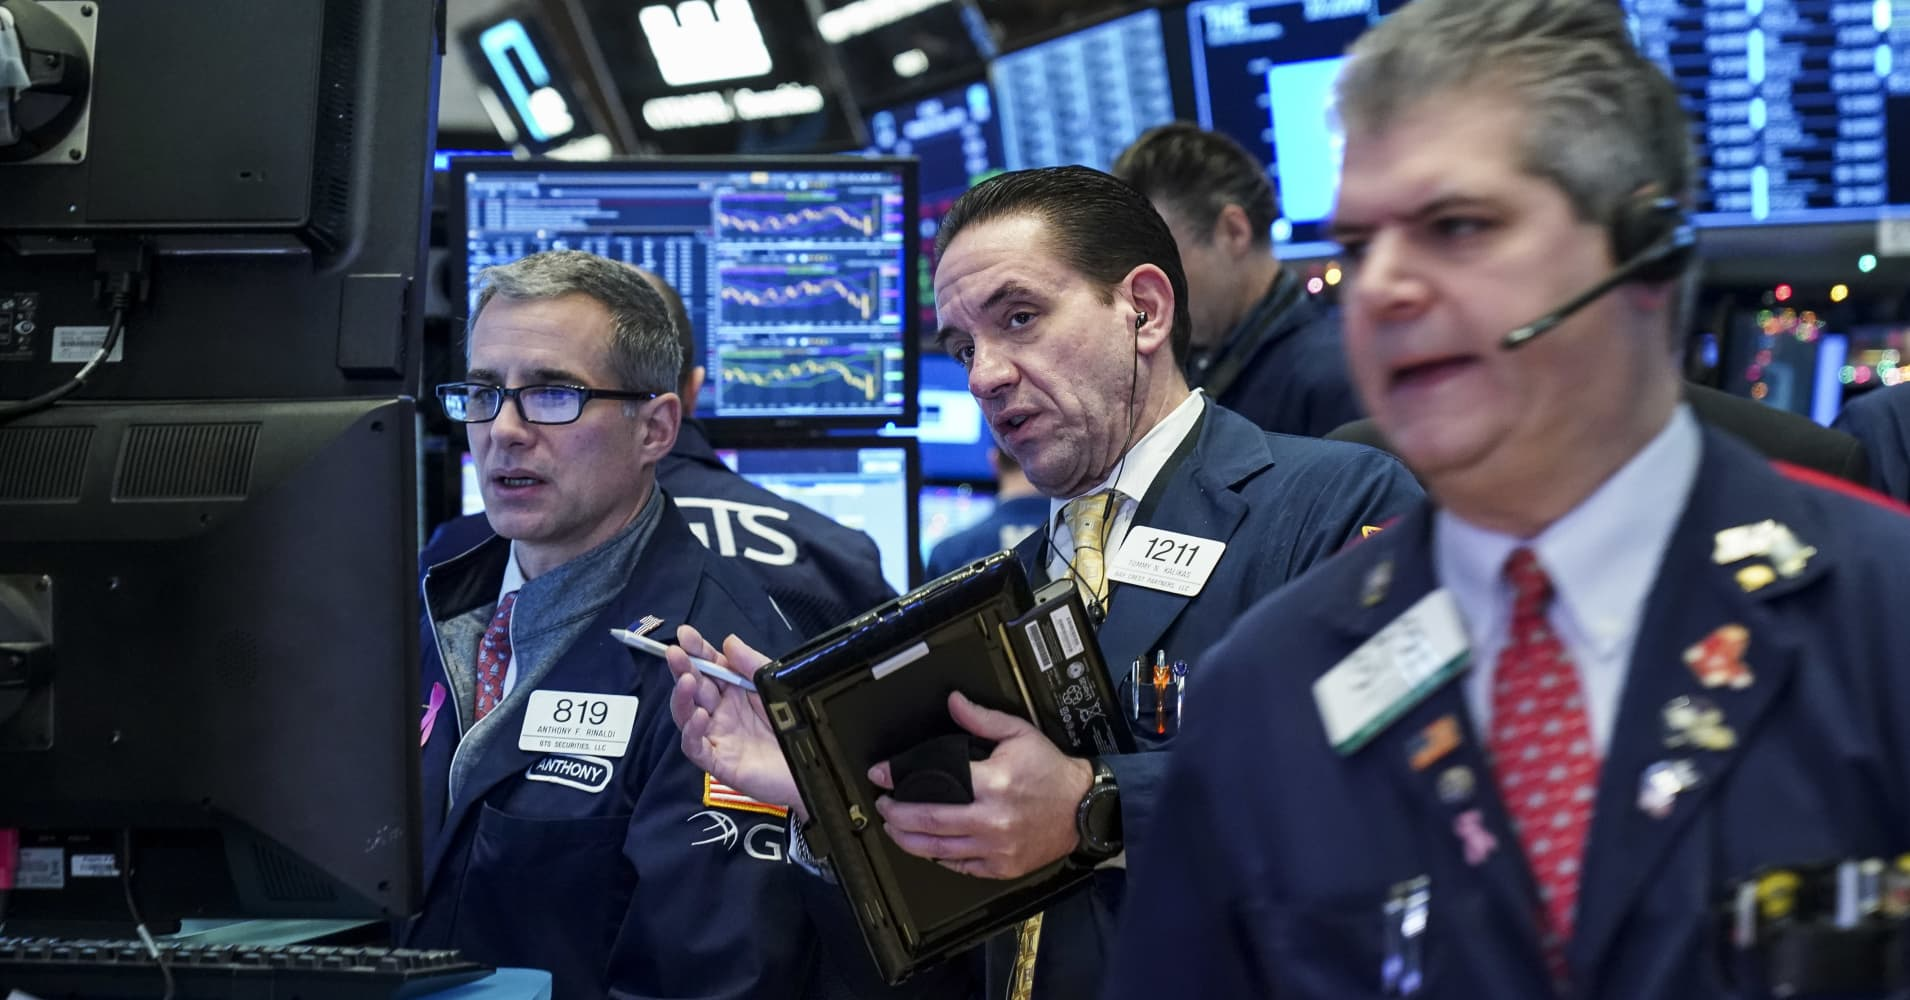 US Treasury yields move higher as investors monitor data, auctions